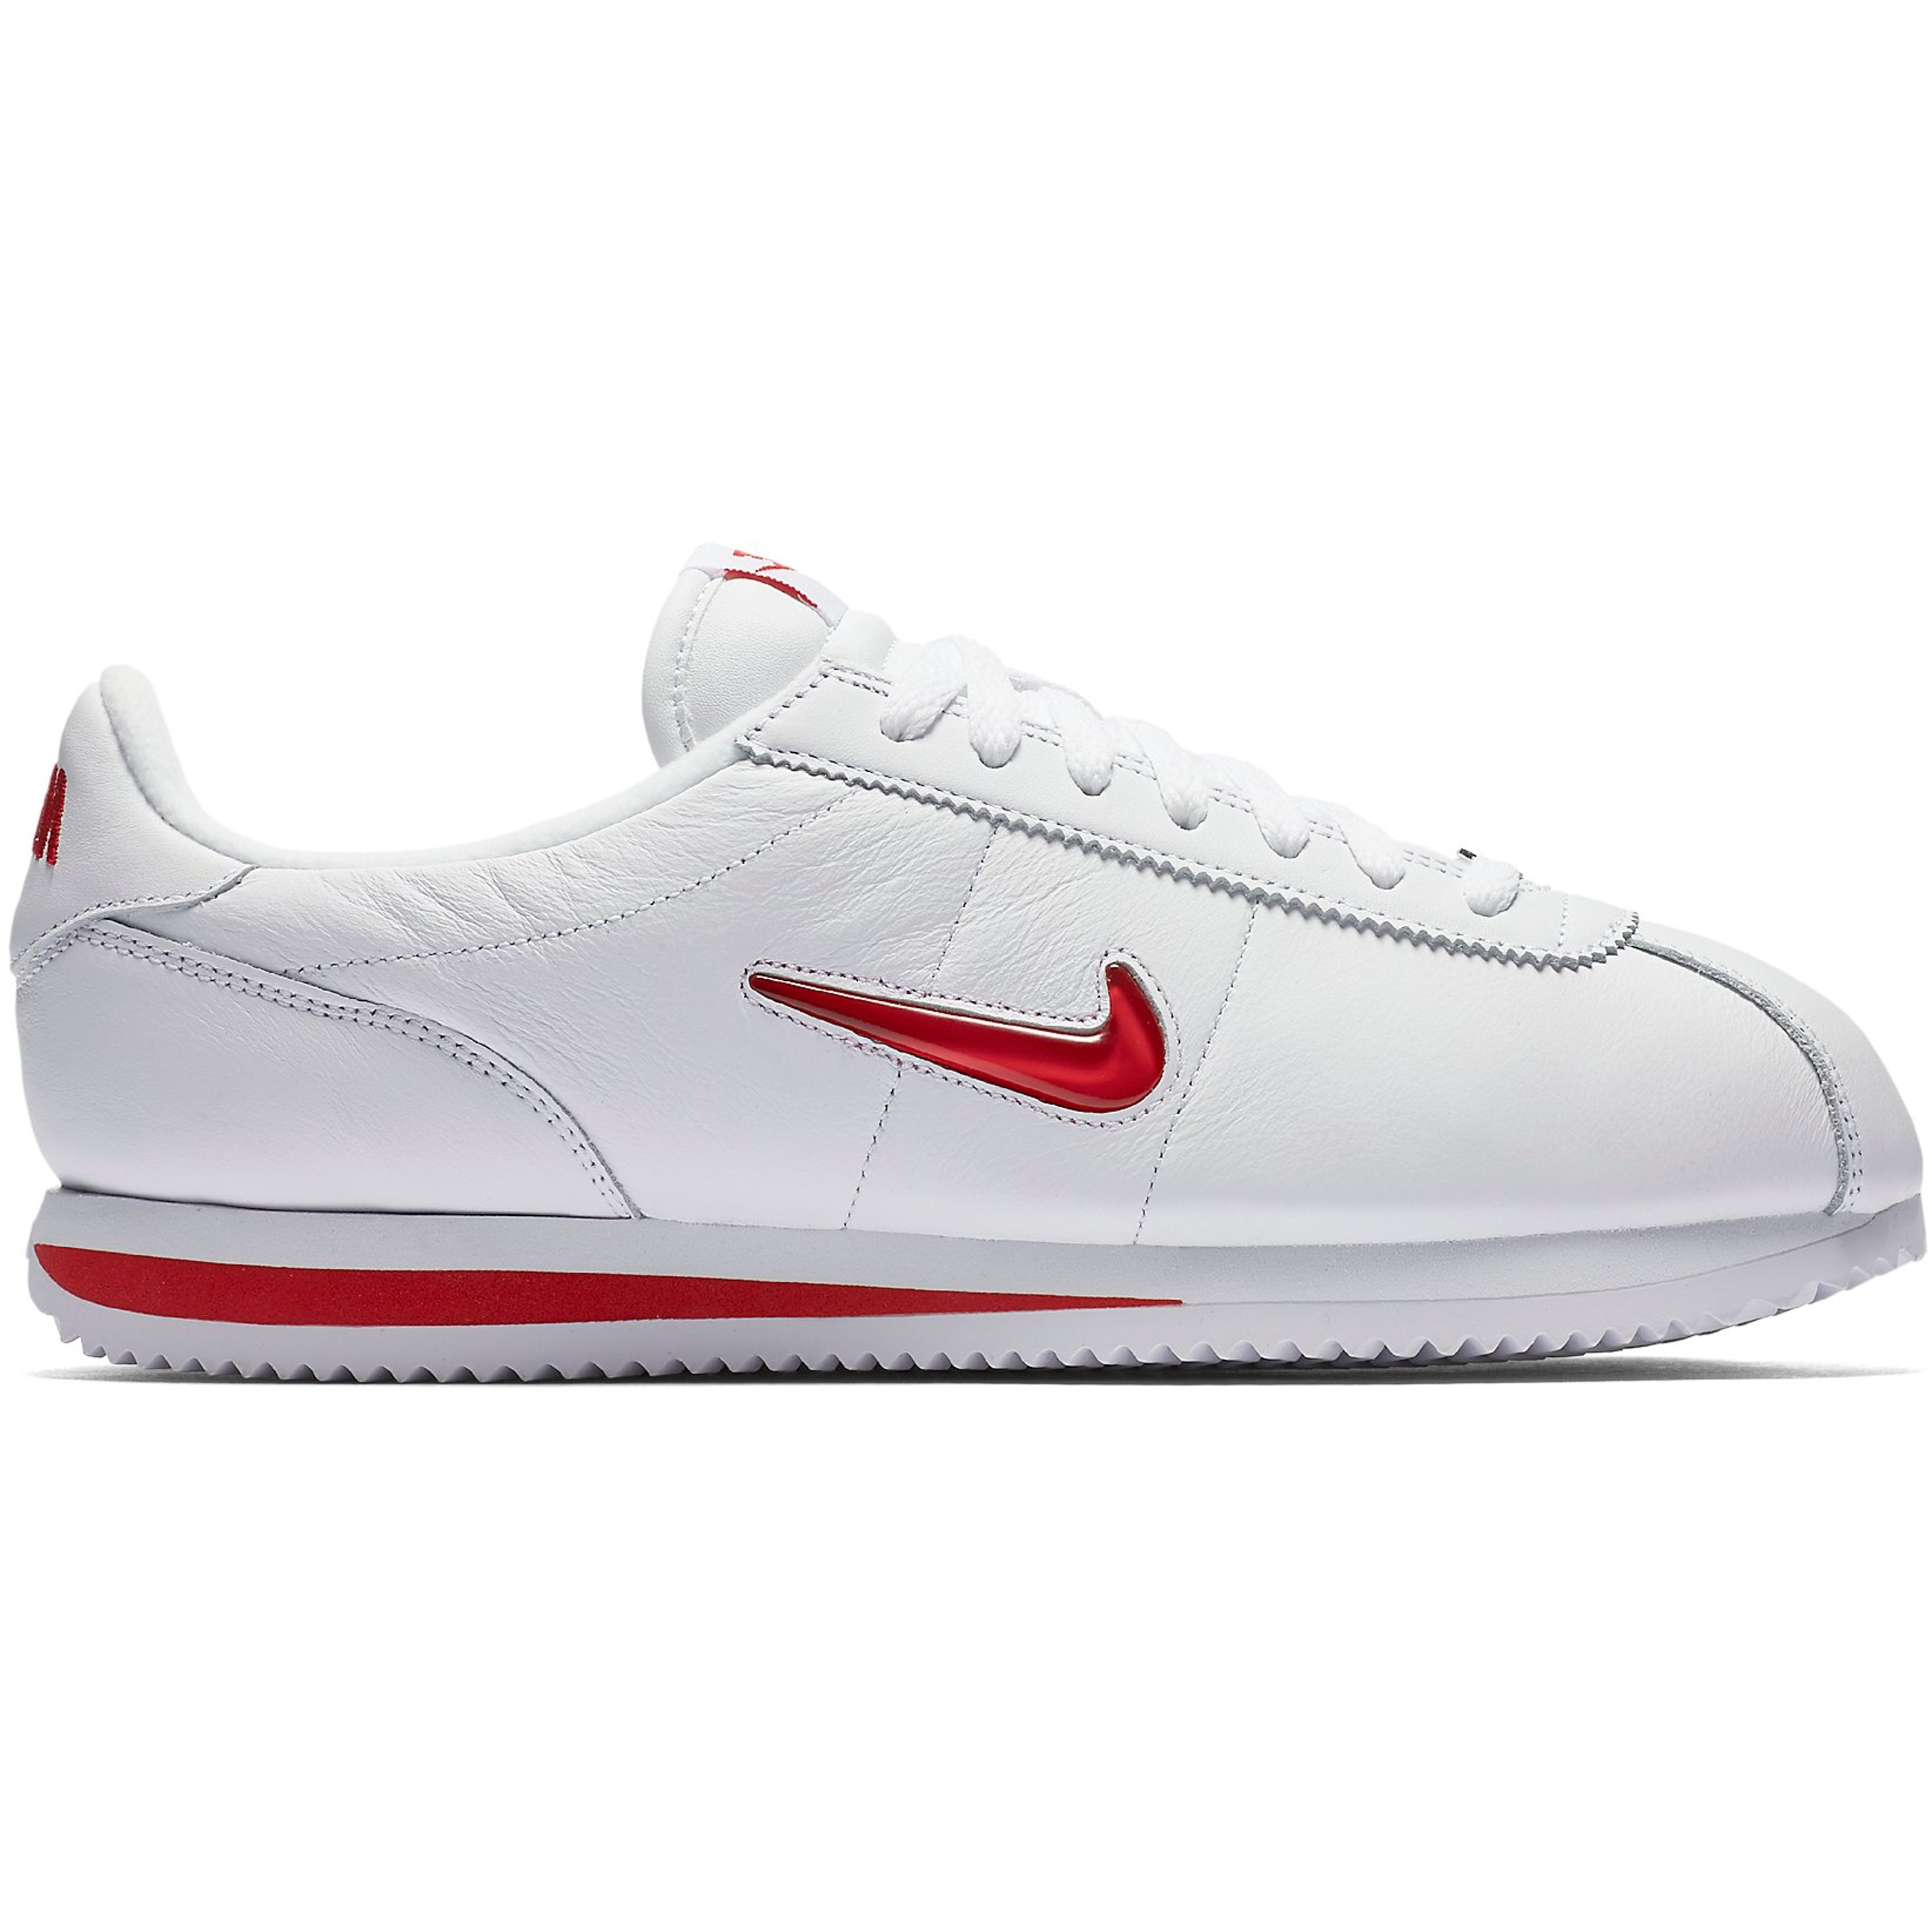 Nike Cortez Basic Jewel Rare Ruby (938343-100)